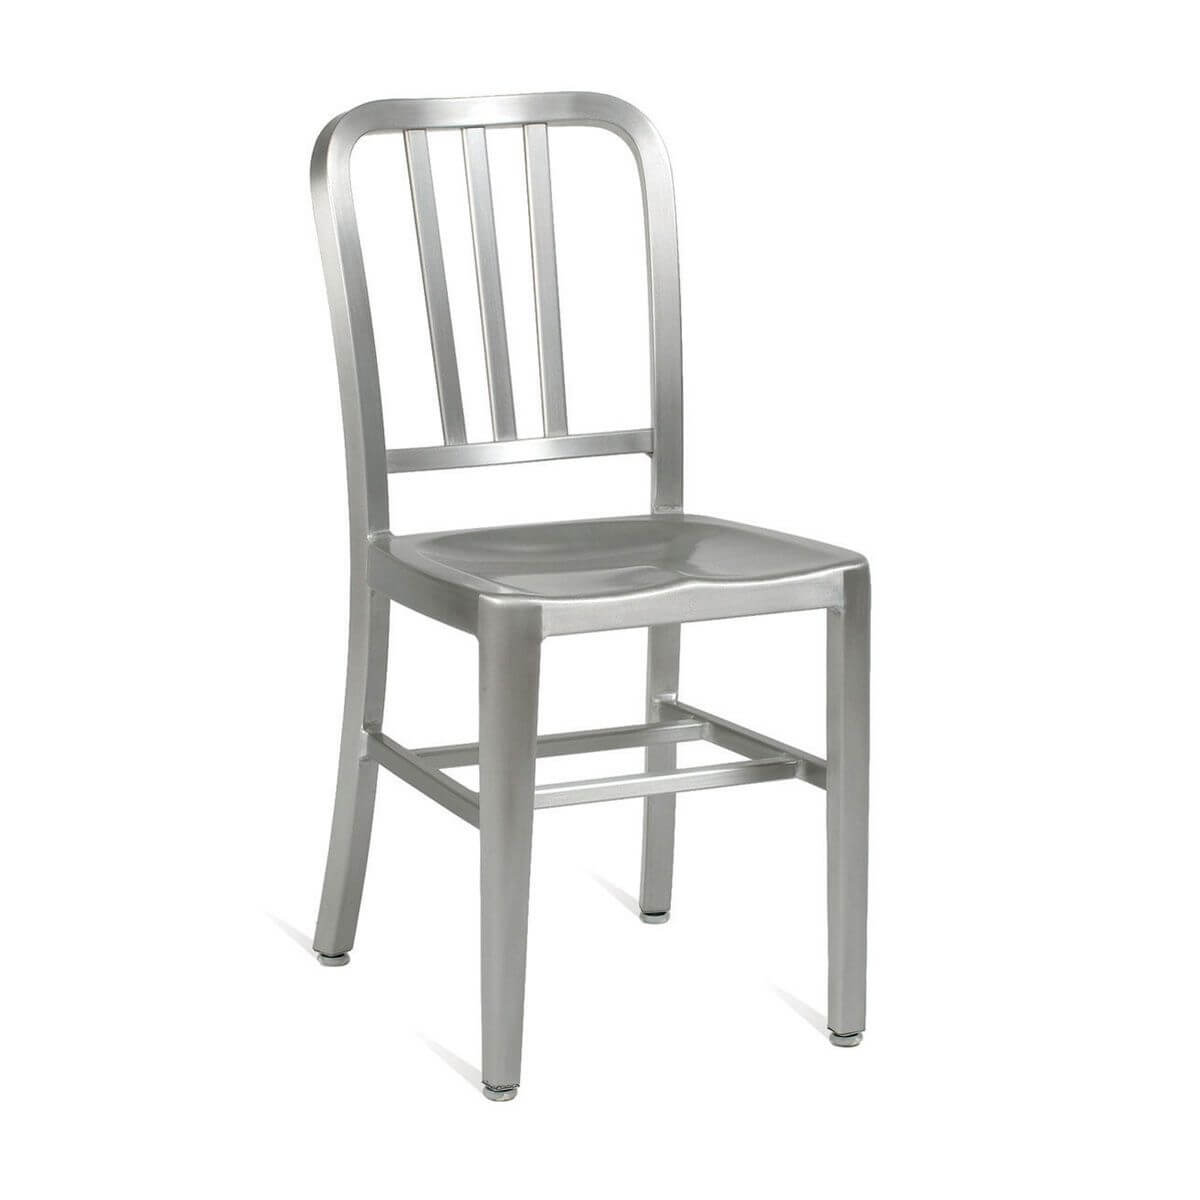 navy-chair